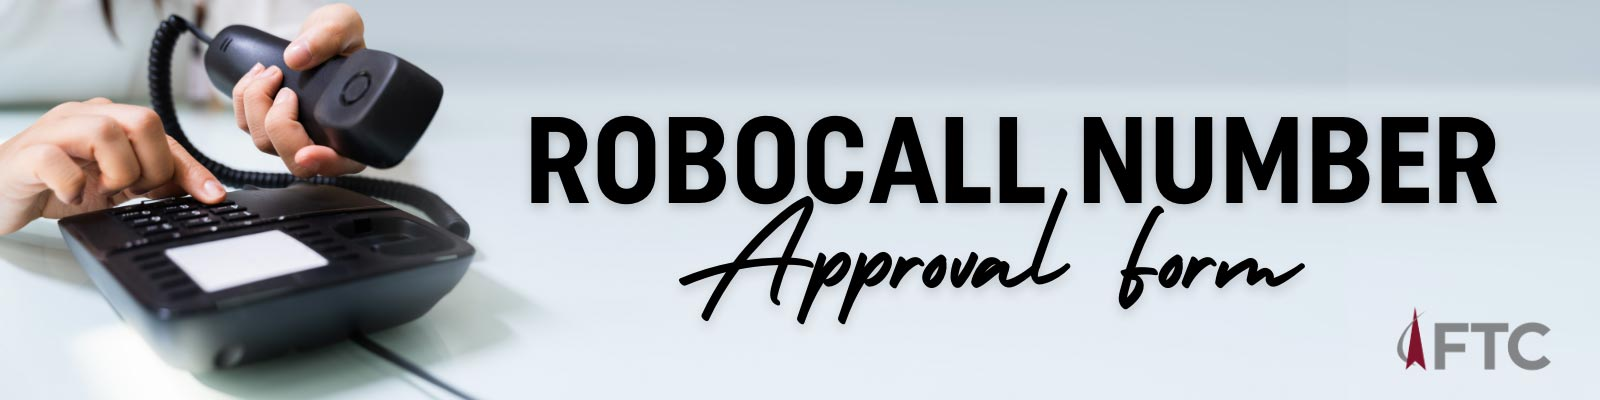 Robocall Number Approval Form